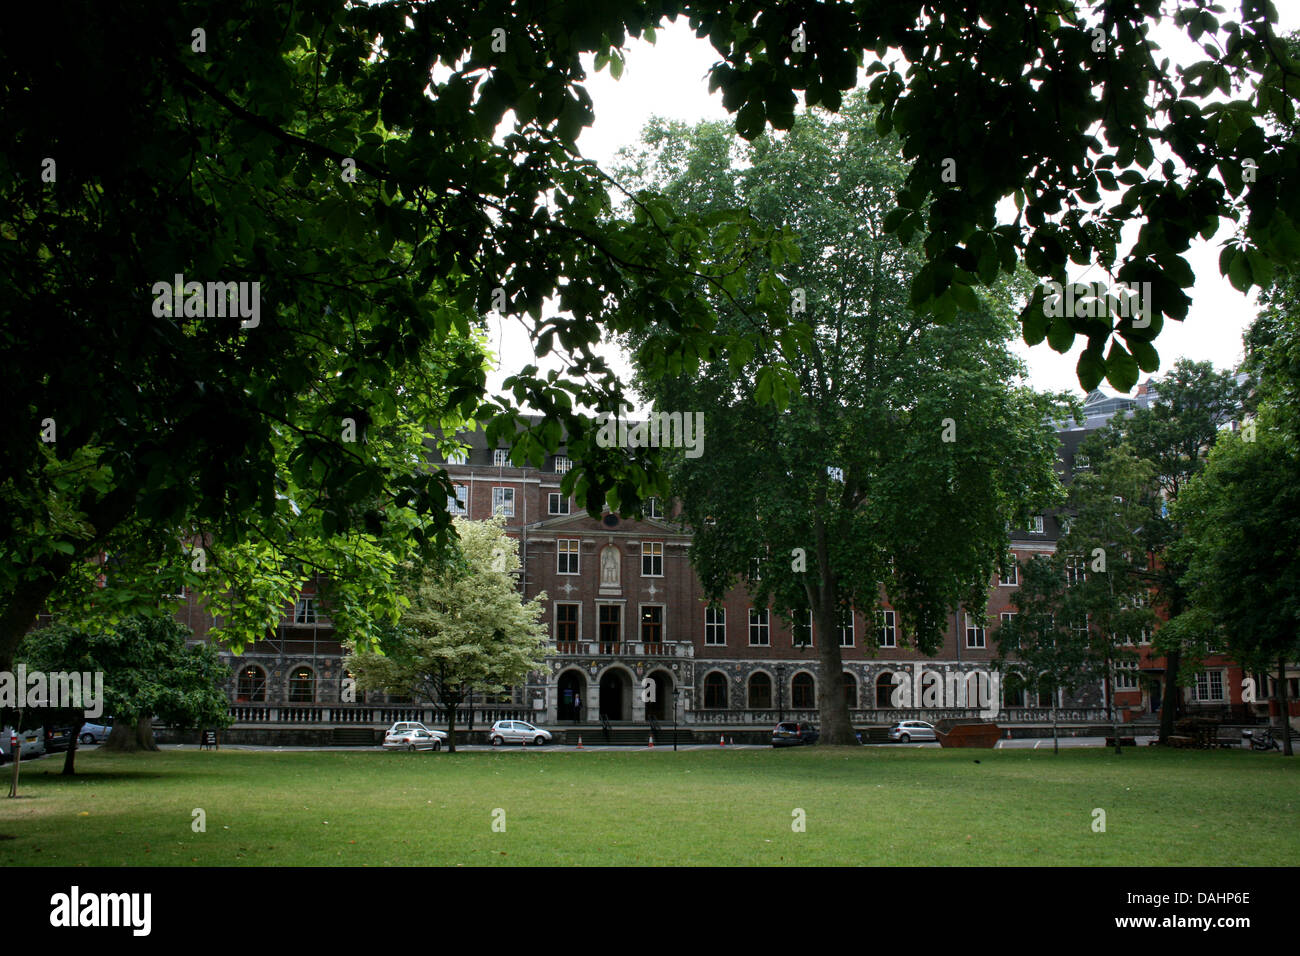 church house in deans yard city of westminster london uk 2013 - Stock Image